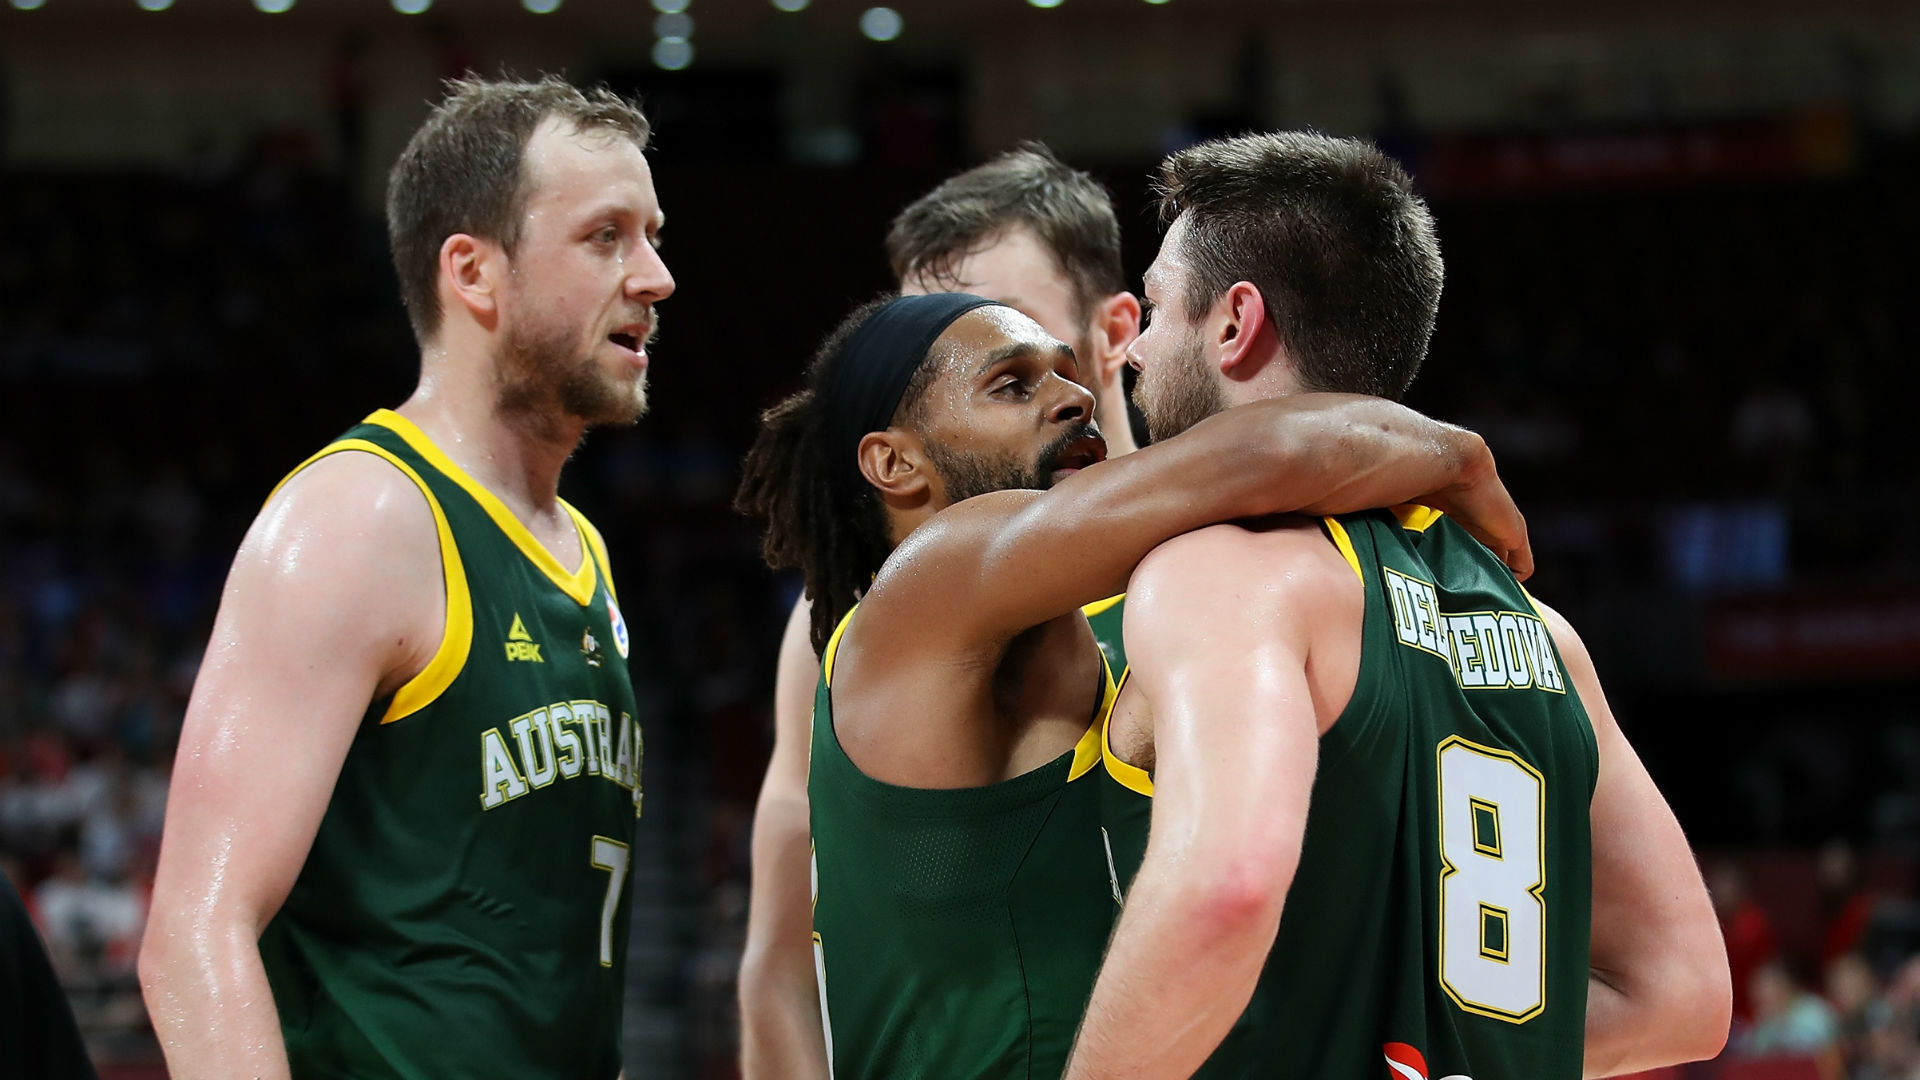 FIBA Basketball World Cup 2019: Australia loses to Spain in double overtime